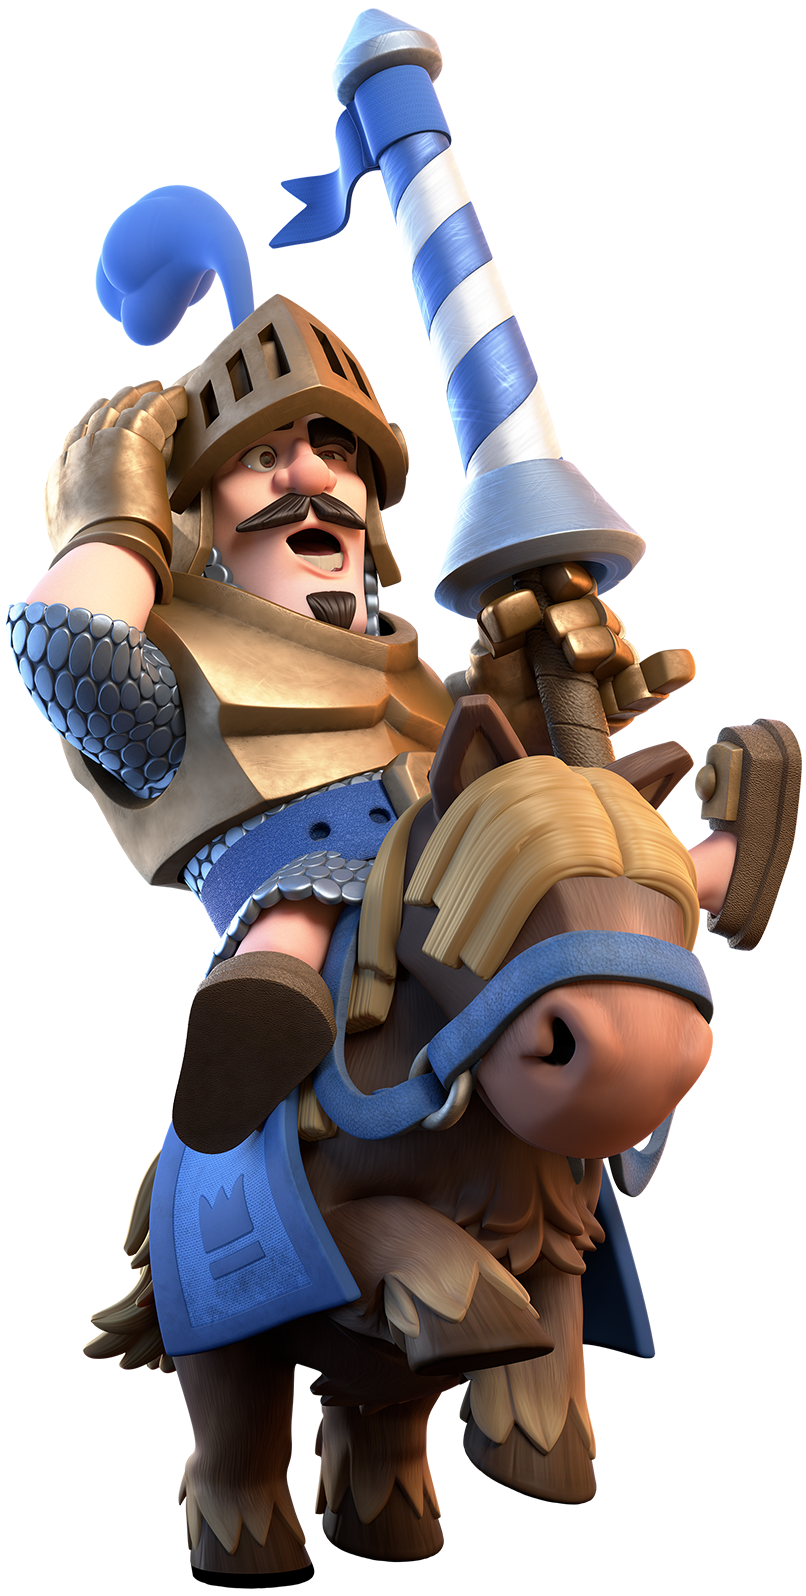 clash royale android picture HD HQ Wallpaper | Wallpapers | Pinterest ...